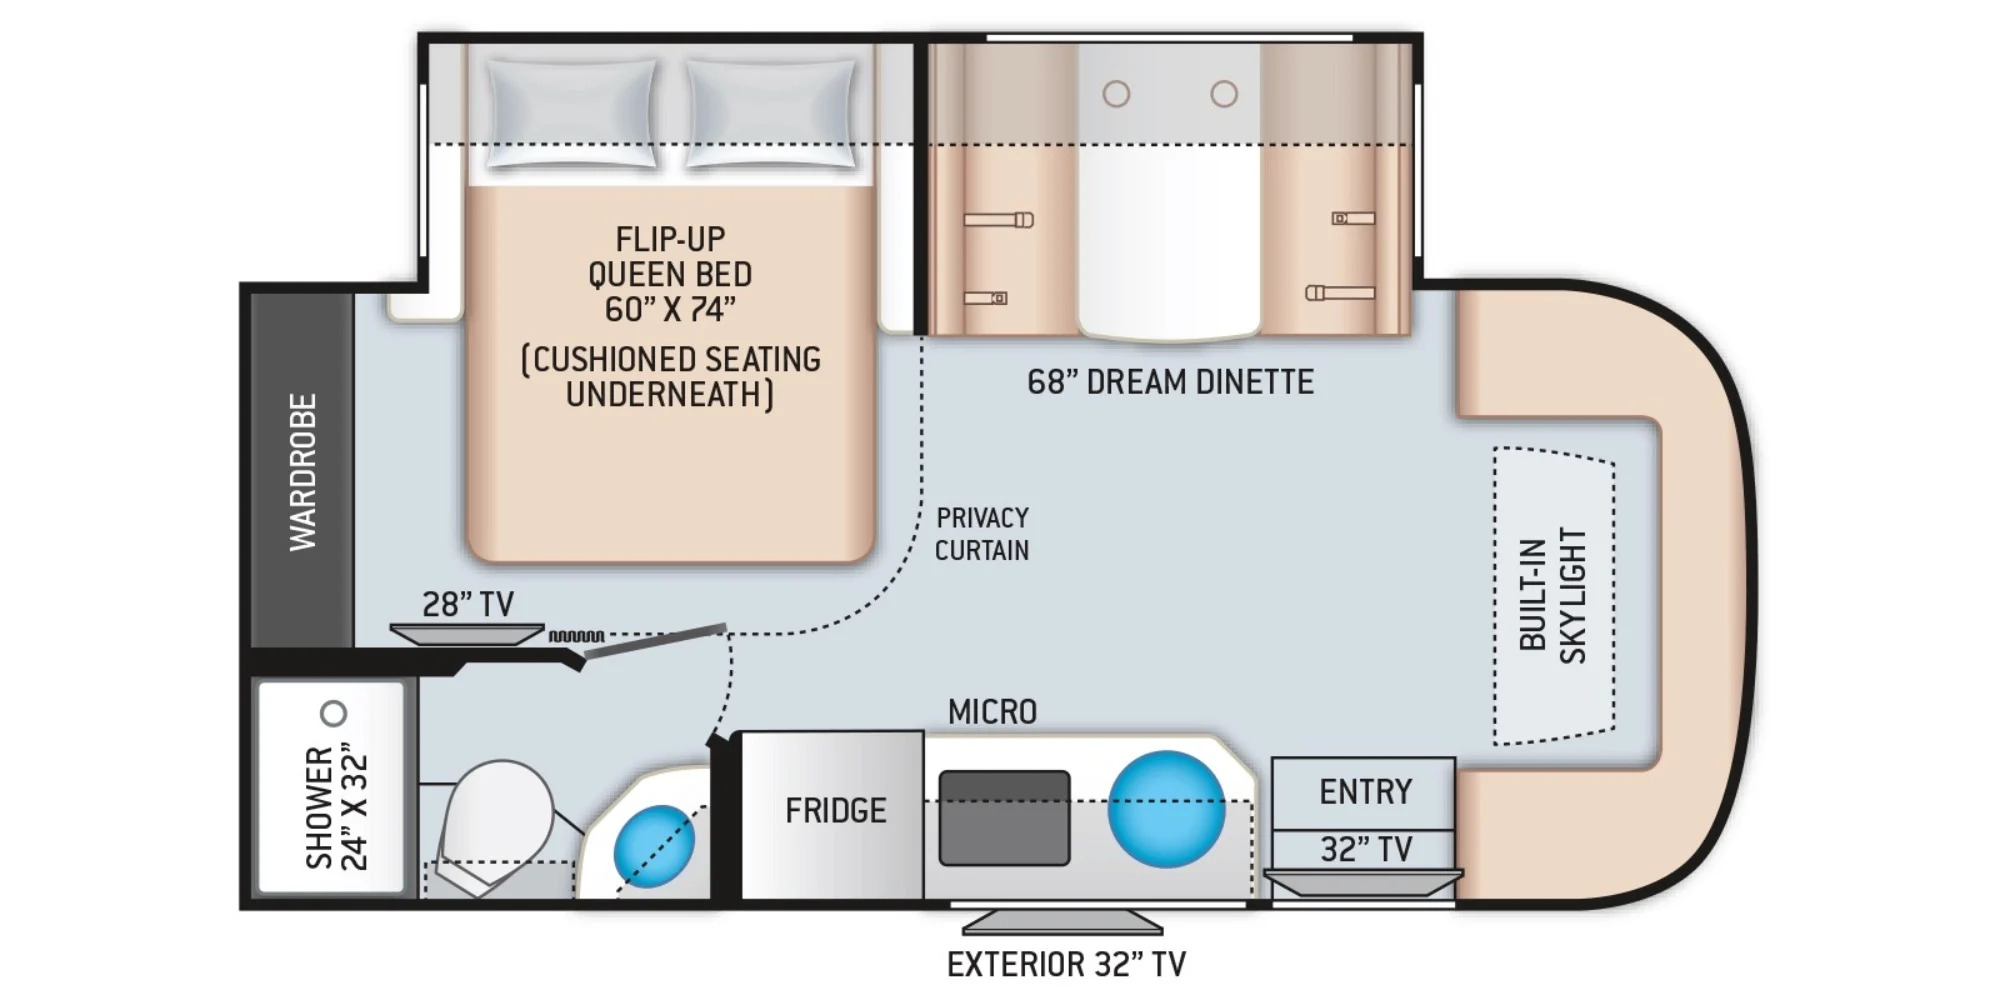 View Floor Plan for 2022 THOR COMPASS 23TW